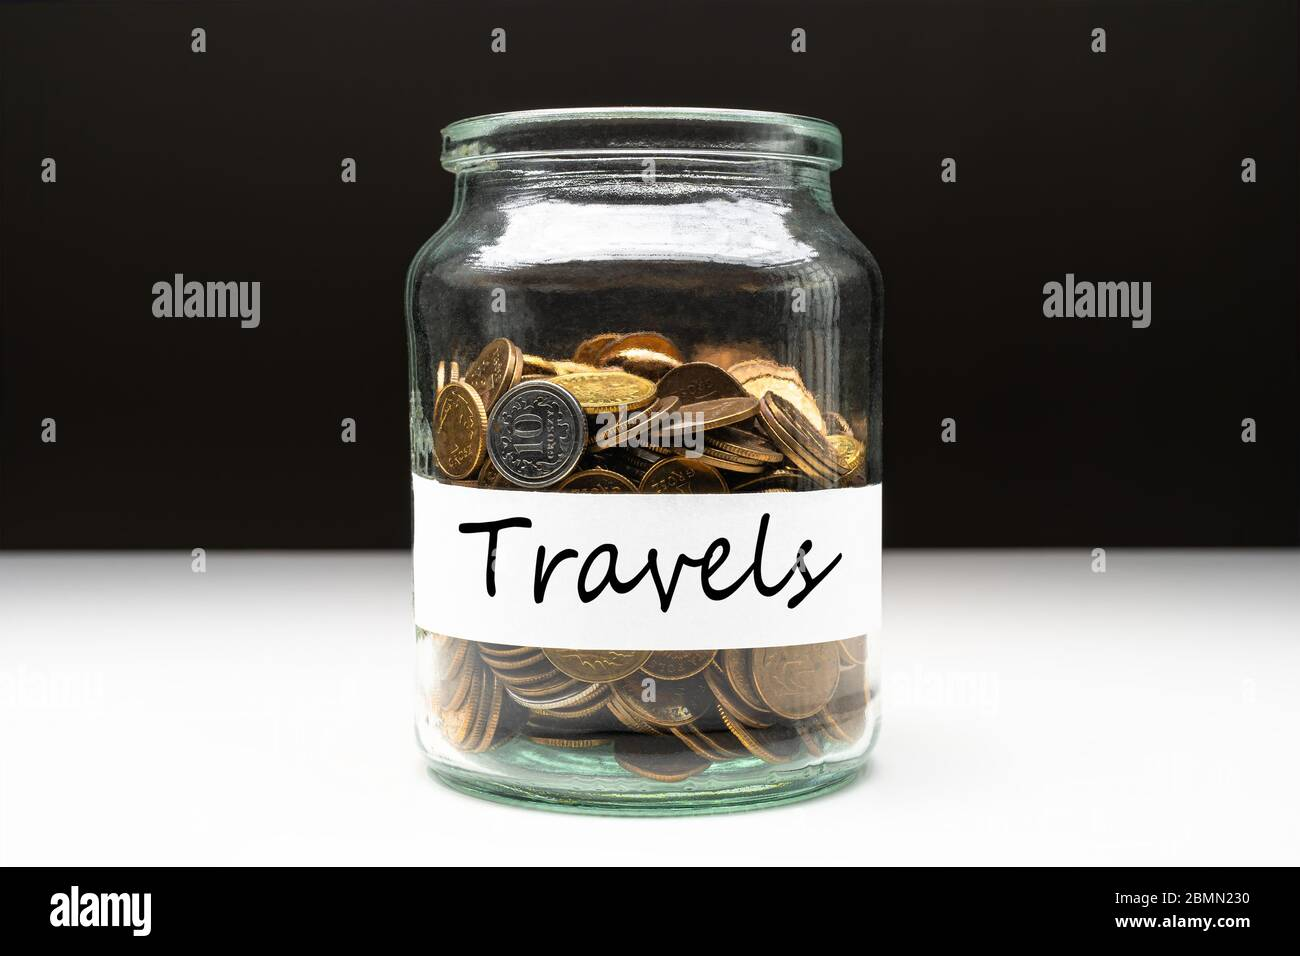 Coins in a jar with travels text on a white label. Savings abstract concept. Copy space. Stock Photo